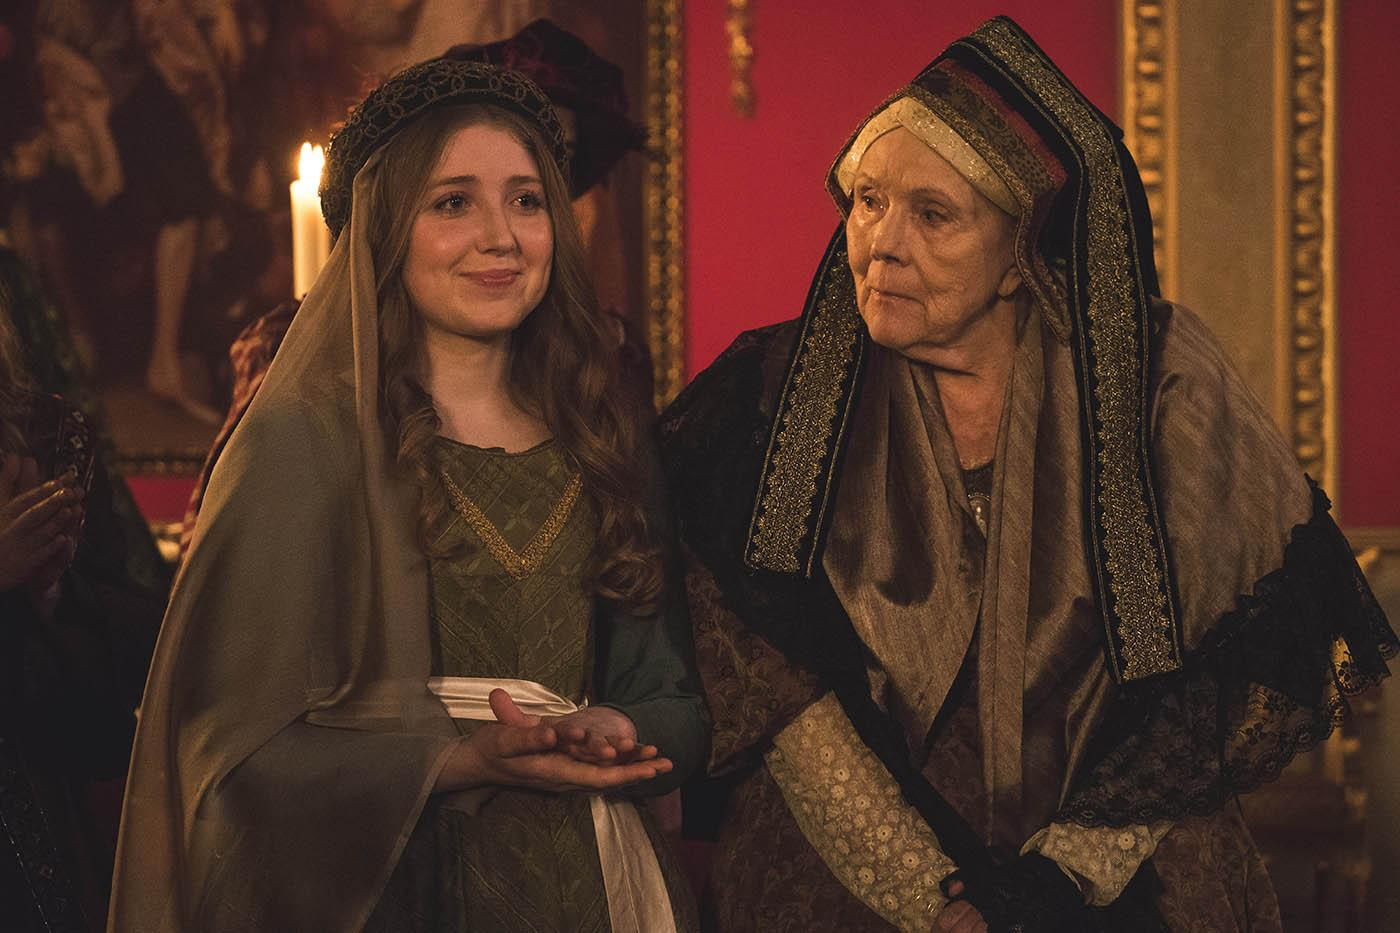 Wilhelmina Coke and the Duchess of Buccleuch (Diana Rigg) in Victoria. Photo: Courtesy of ITV Studios